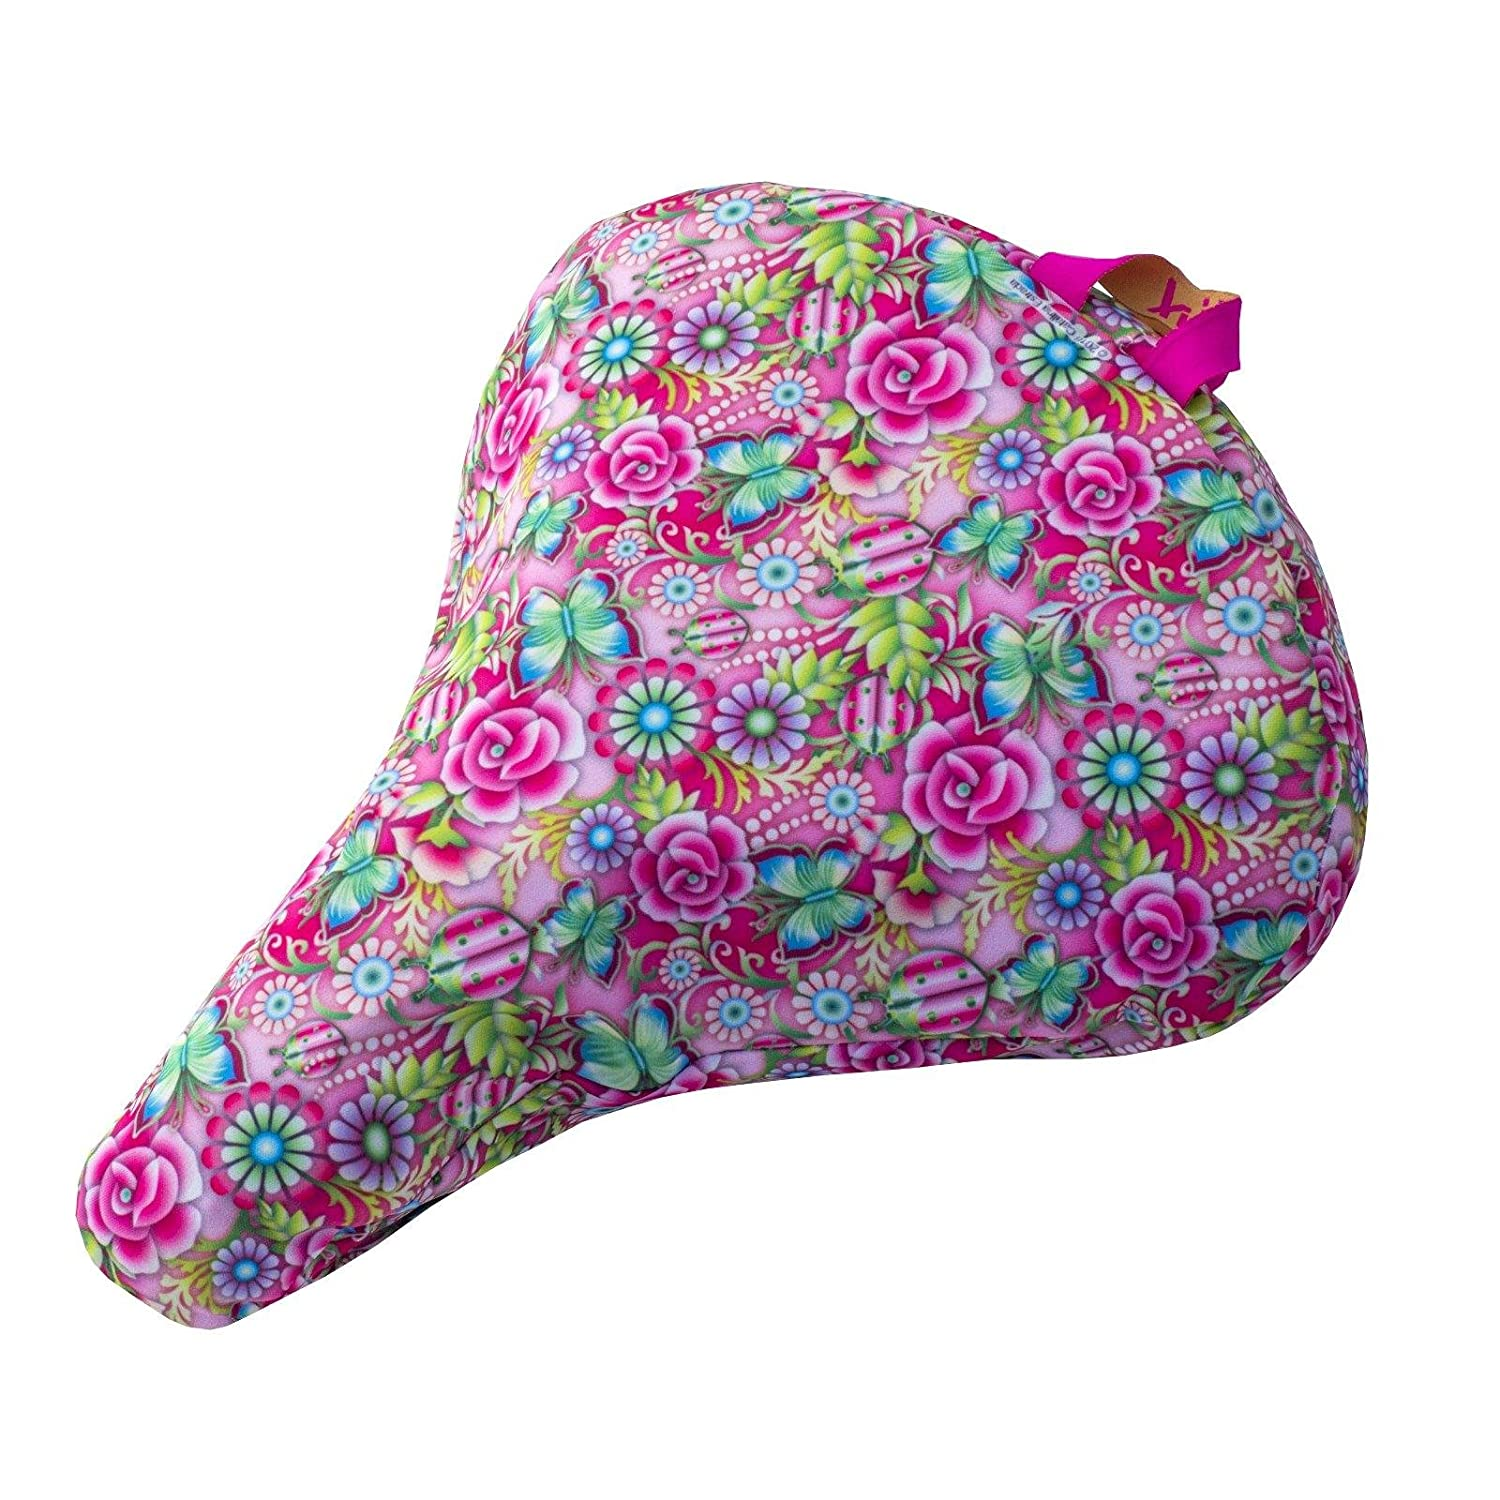 Liix Saddle Cover Catalina Estrada Flowers and Butterflies | waterproof | 600D polyester w/ PVC coating by Liix